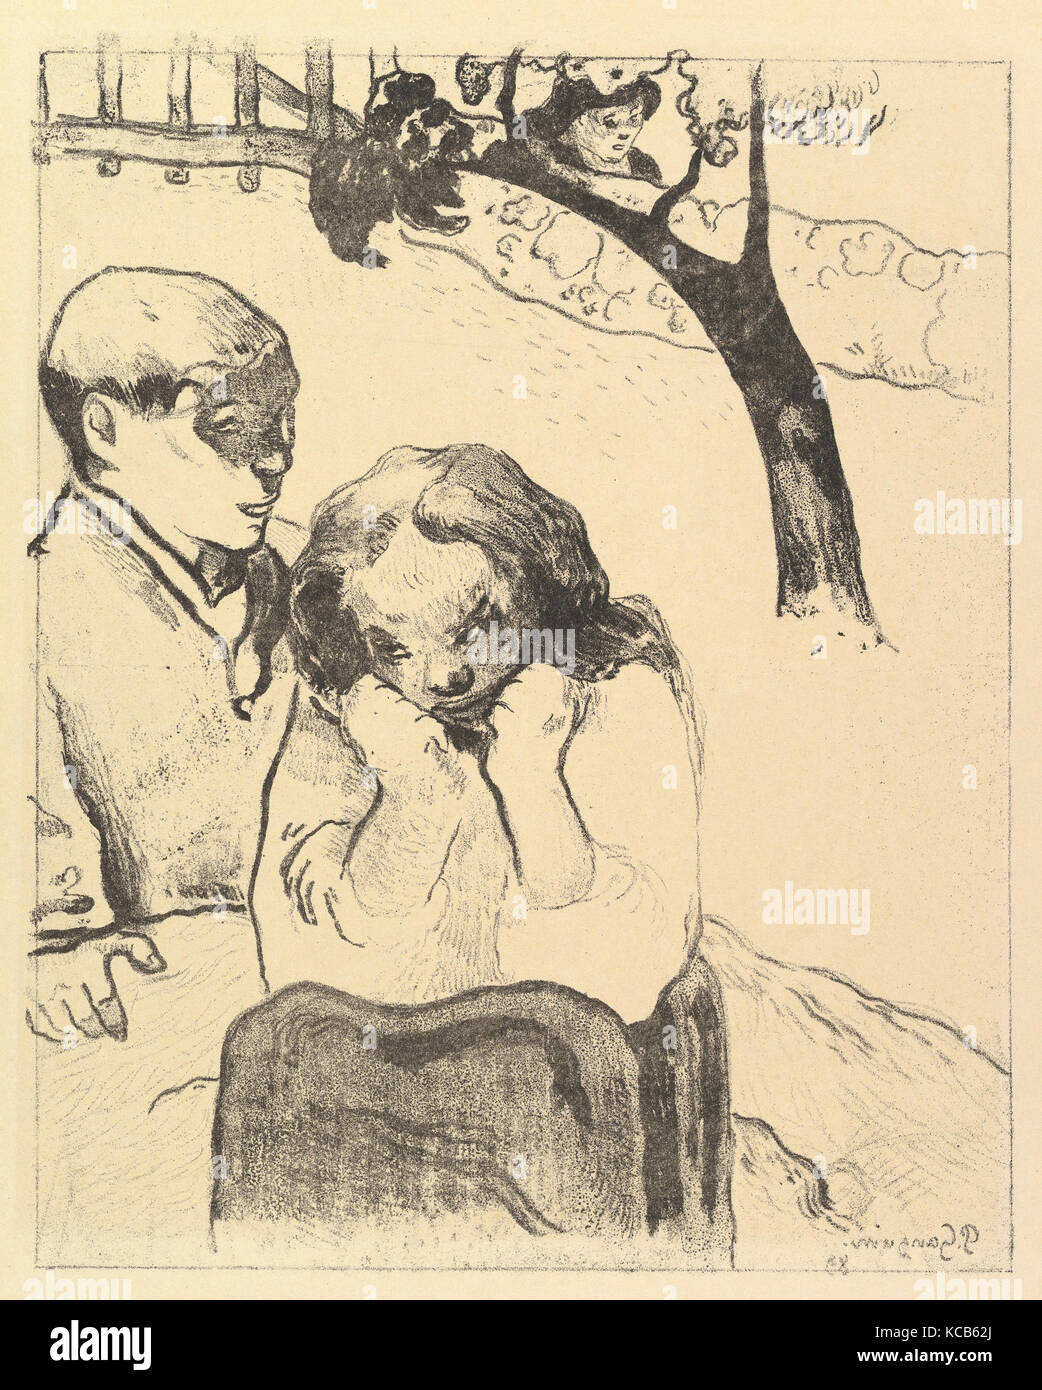 Human Misery, from the Volpini Suite: Dessins lithographiques, Paul Gauguin, 1889 - Stock Image